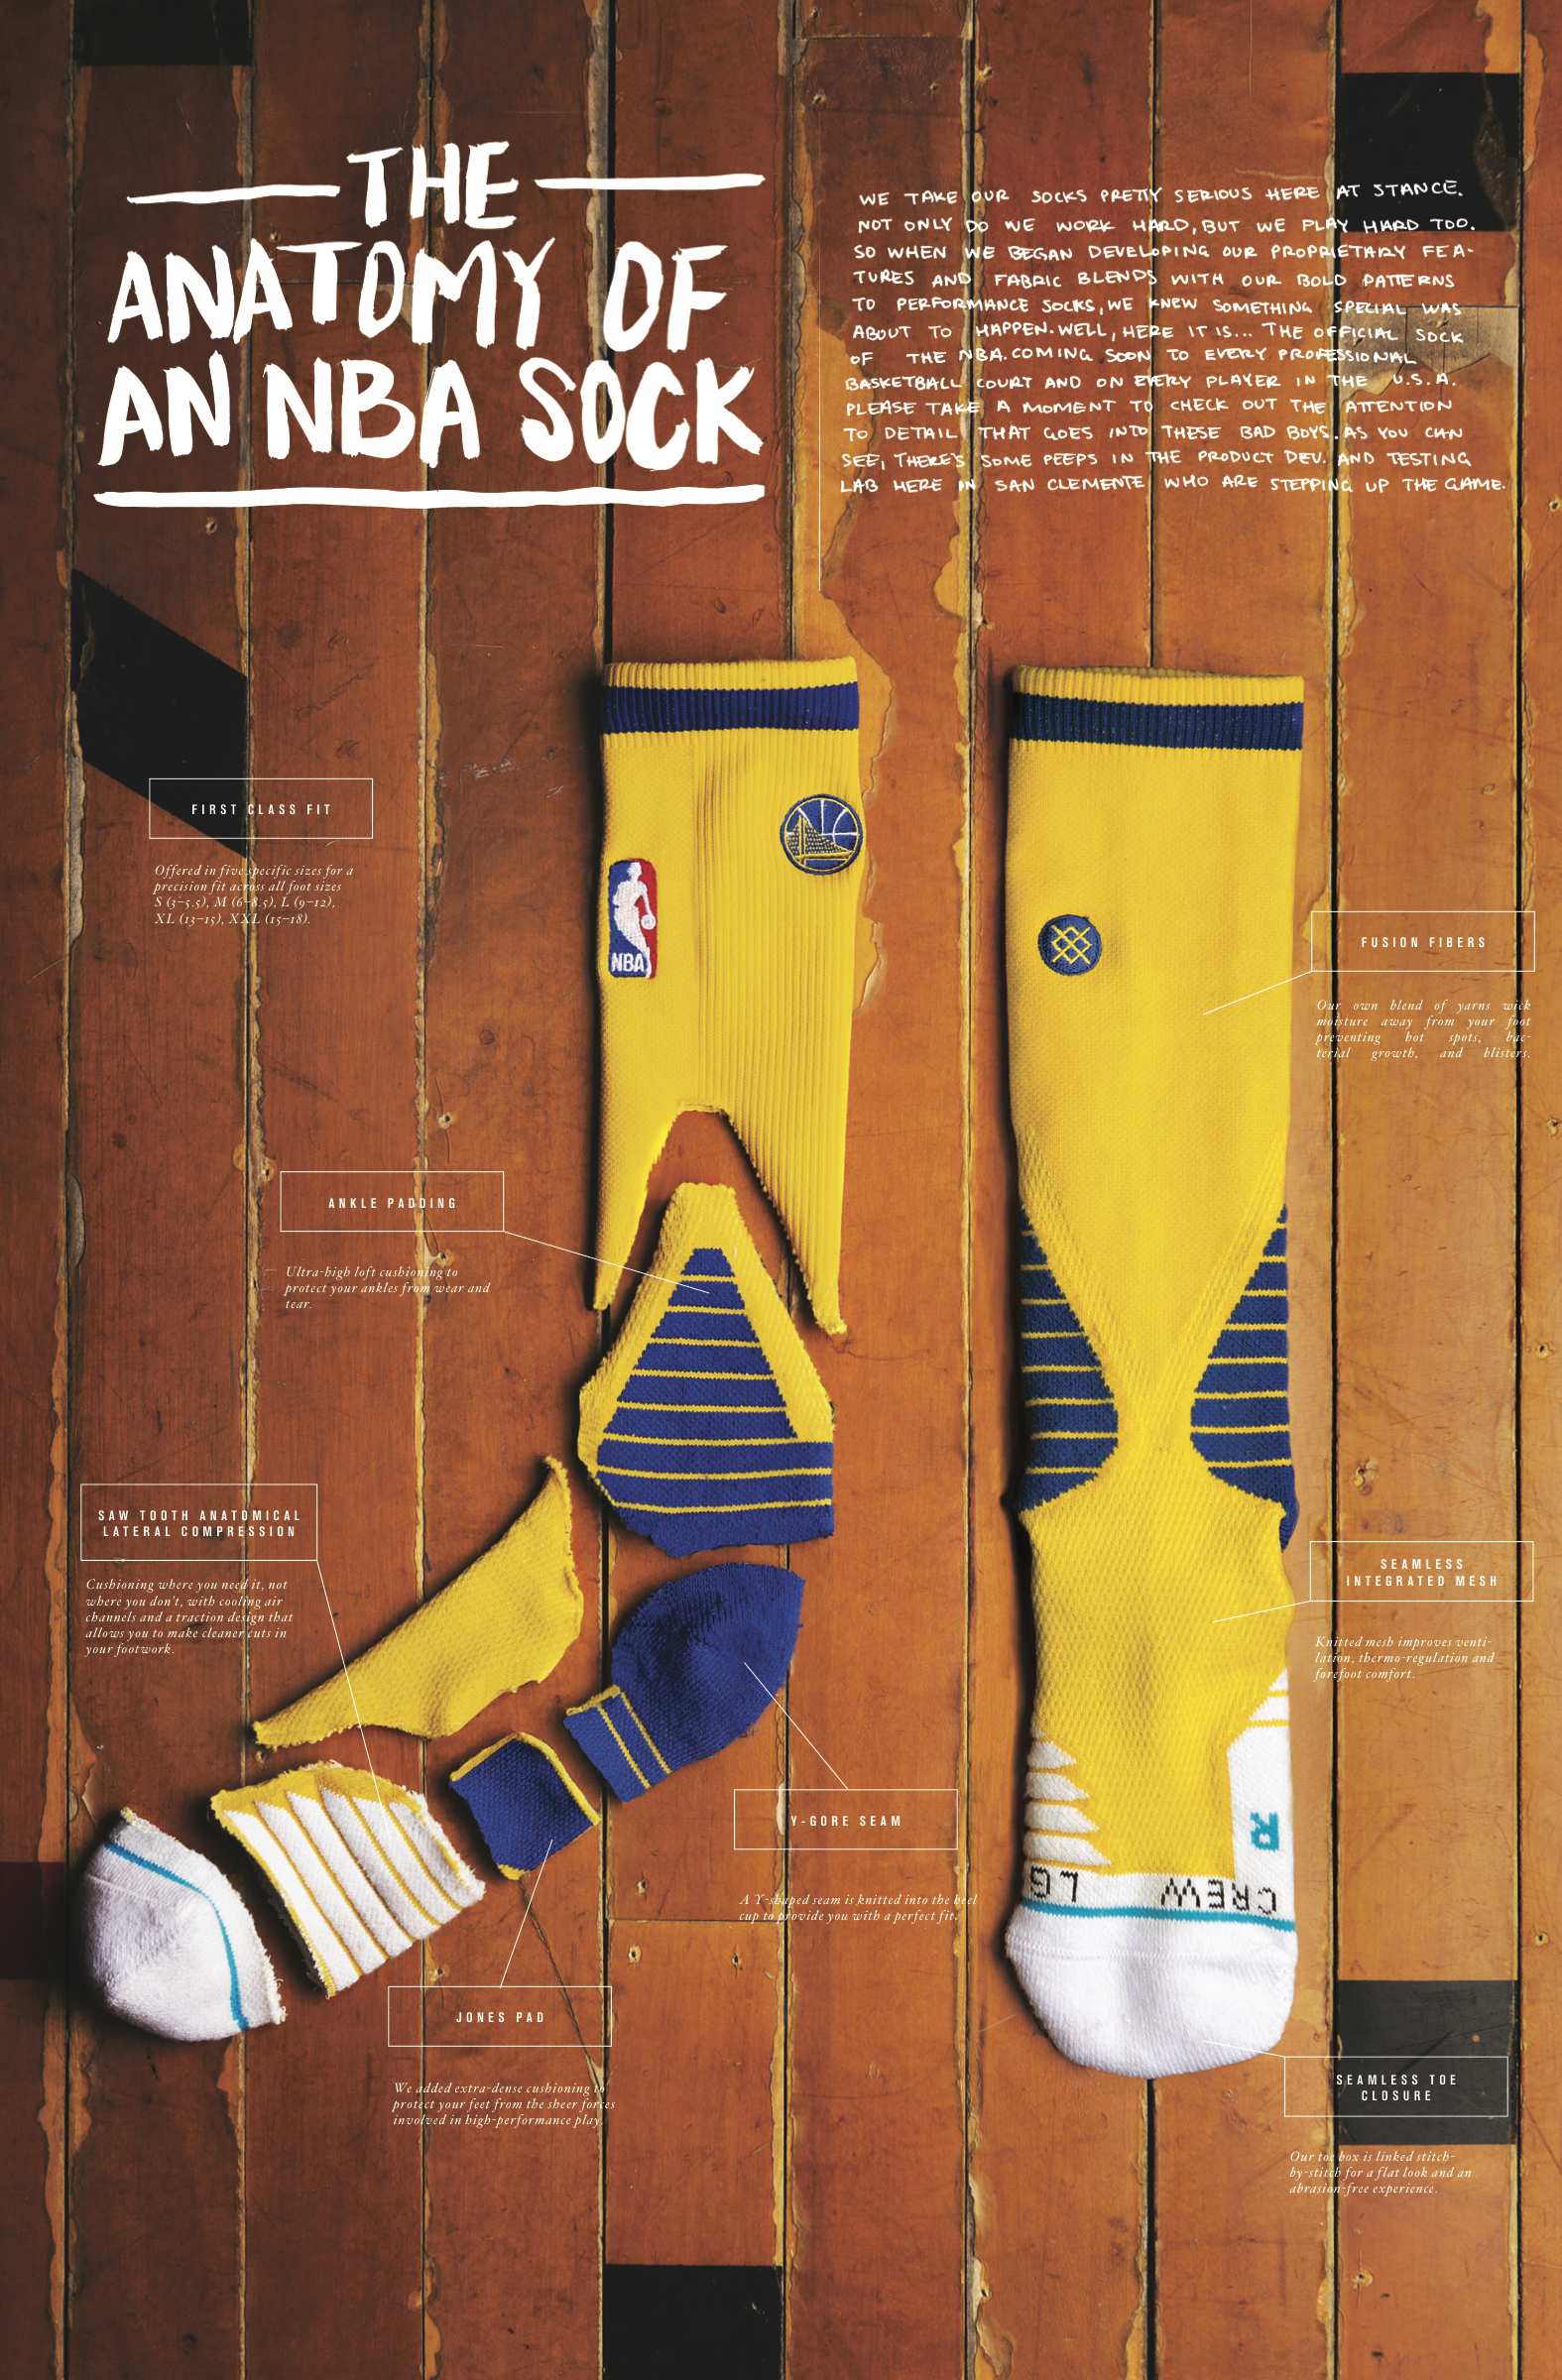 The anatomy of Stance's NBA sock